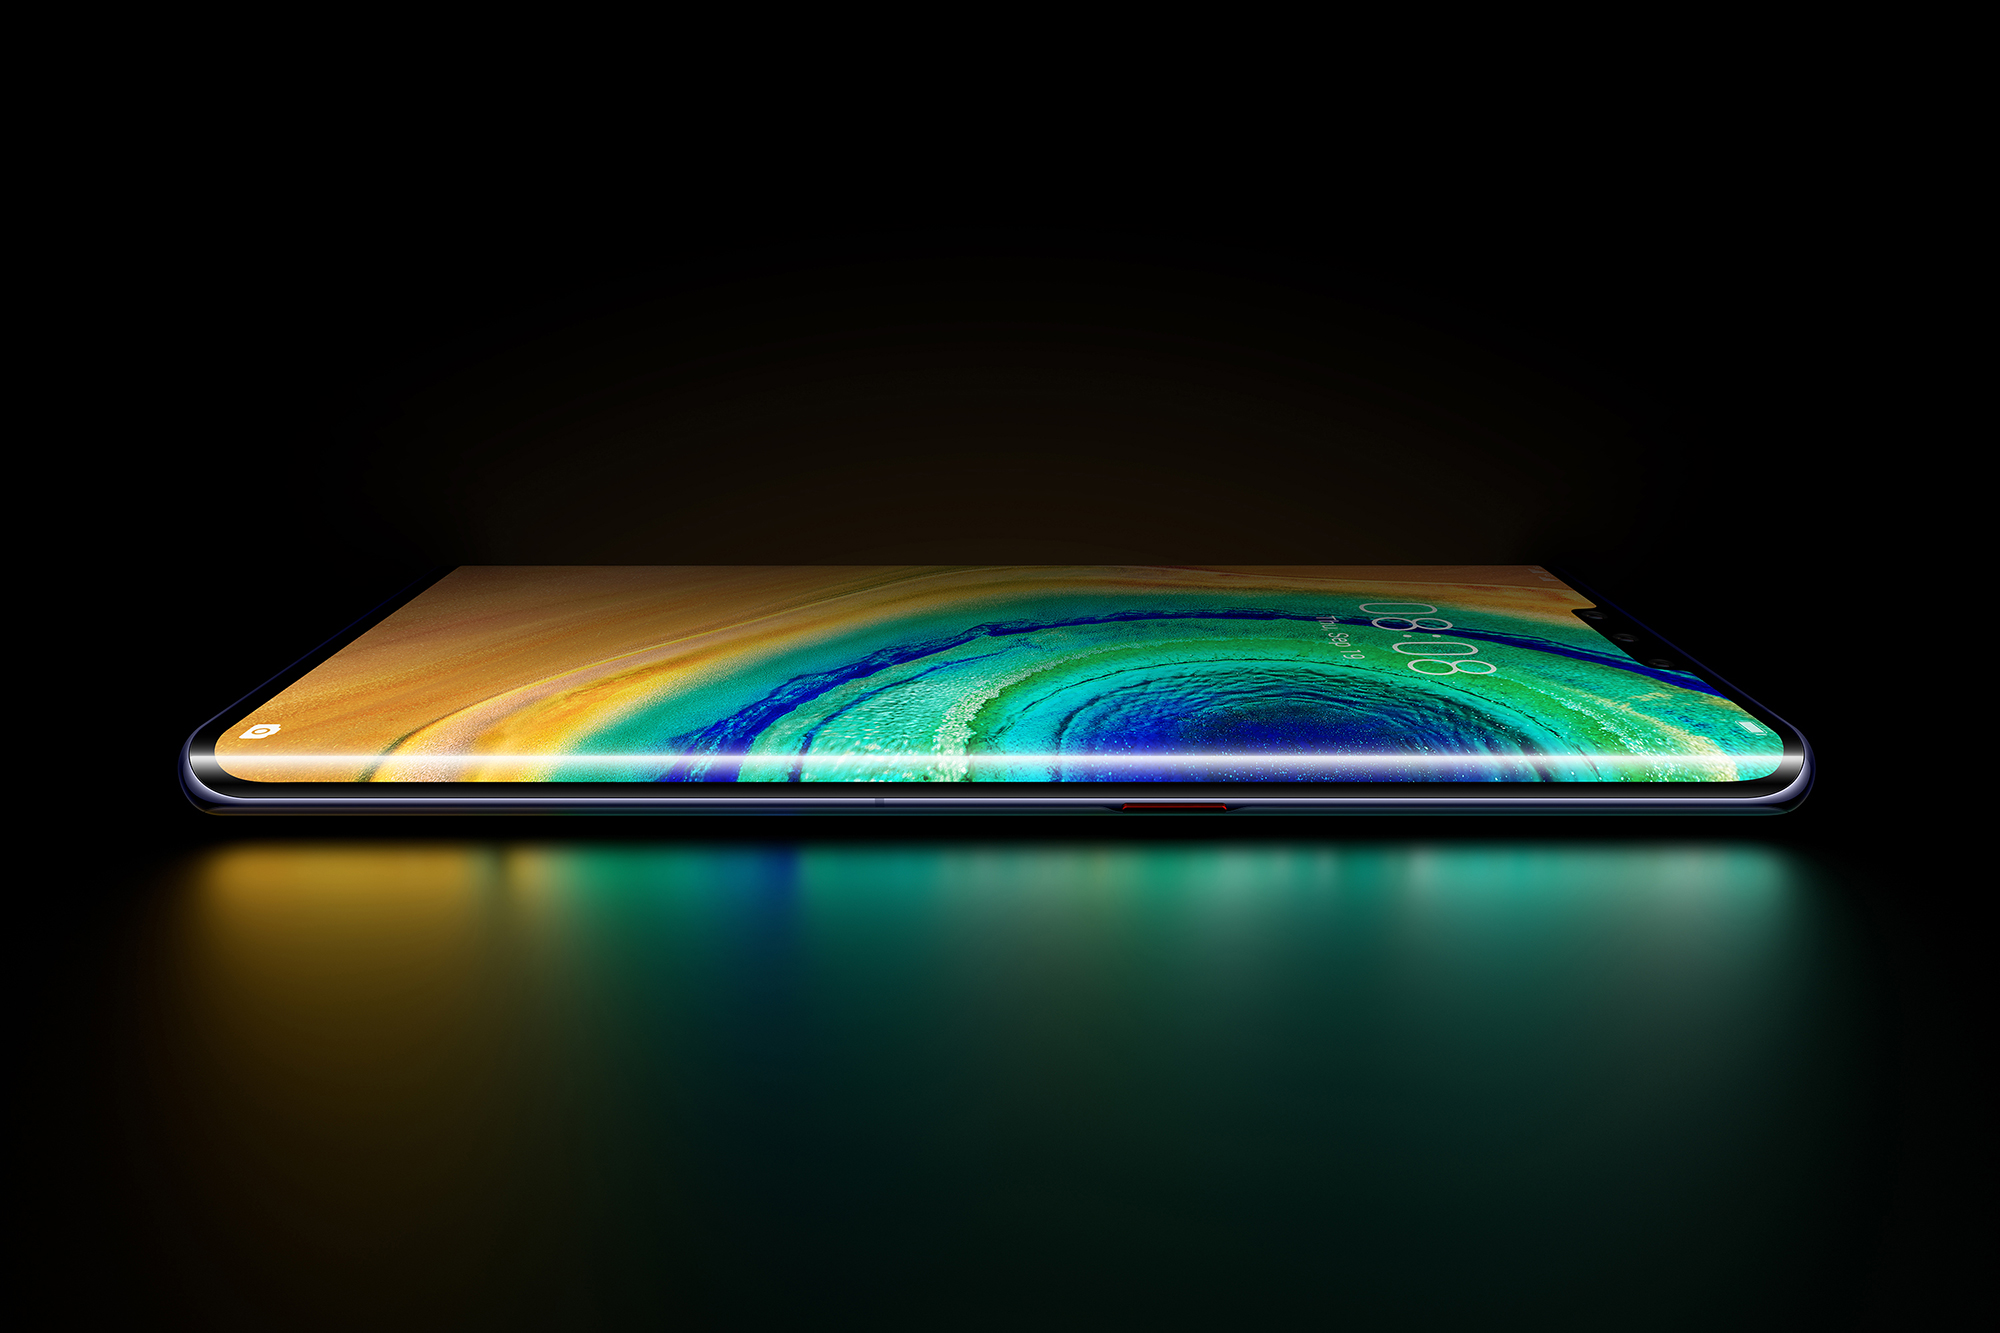 Huawei Mate 30 Pro workaround to install Google apps discovered, but it comes with a trick